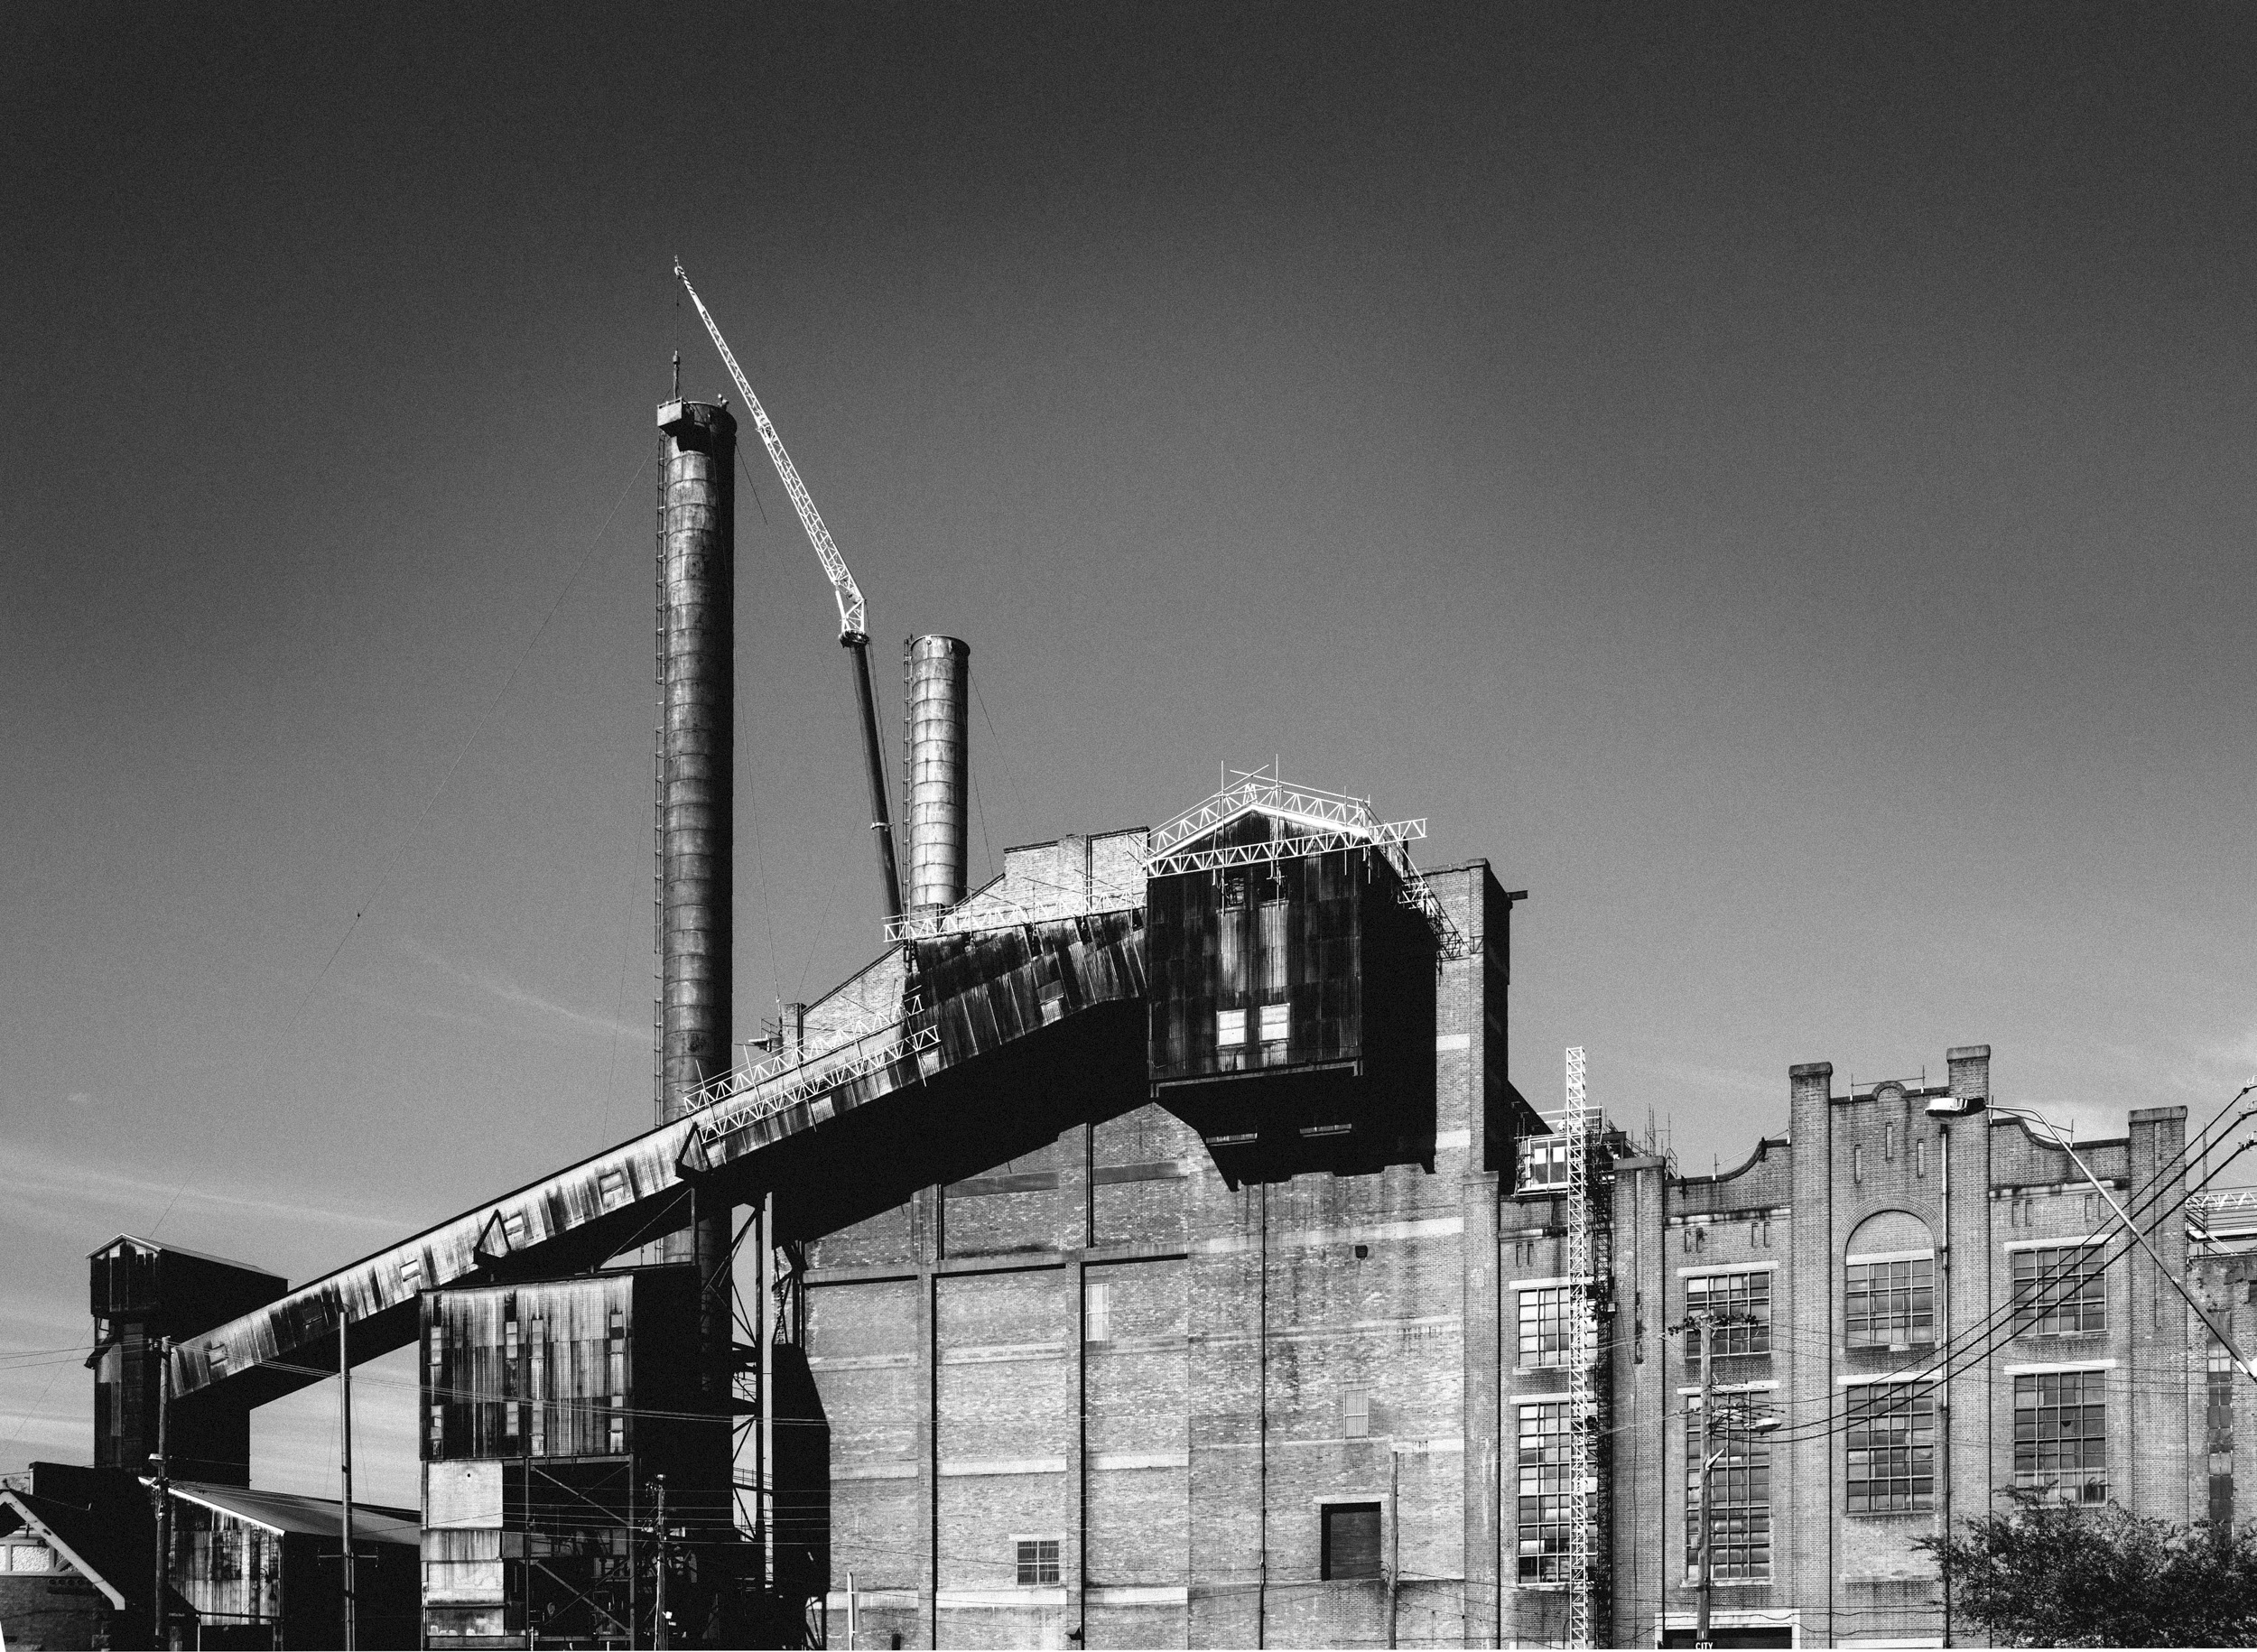 mackintosh_photography_industrial_architecture_08.jpg